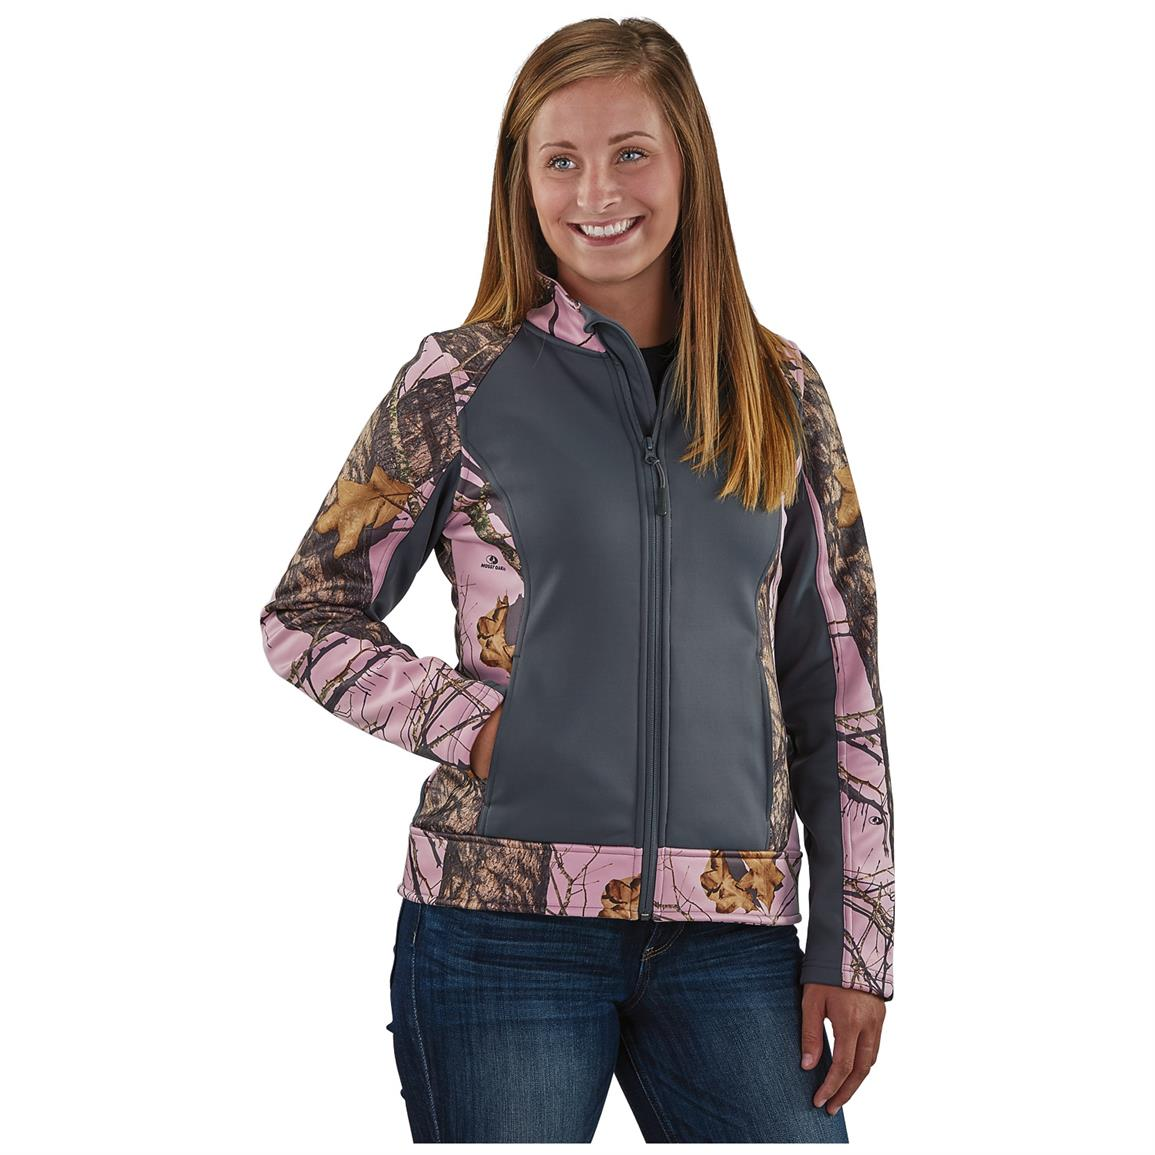 Guide Gear Women's Pink Camo Trim Soft Shell Jacket, Black / Mossy Oak Break-Up Pink